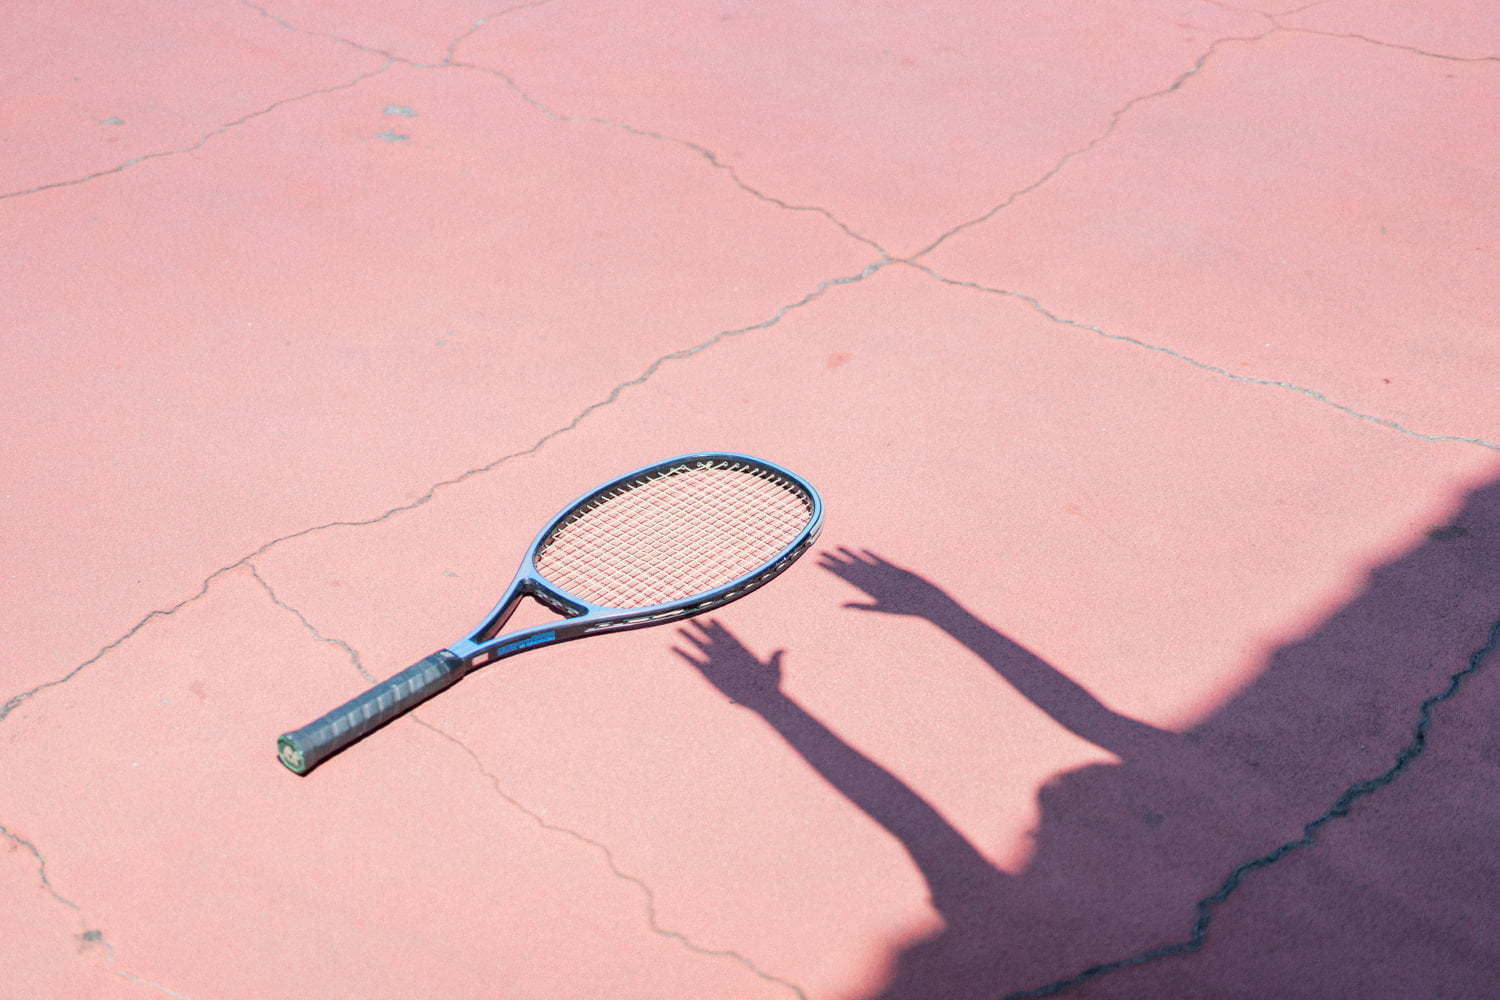 Shadow of hands reaching the tennis racket